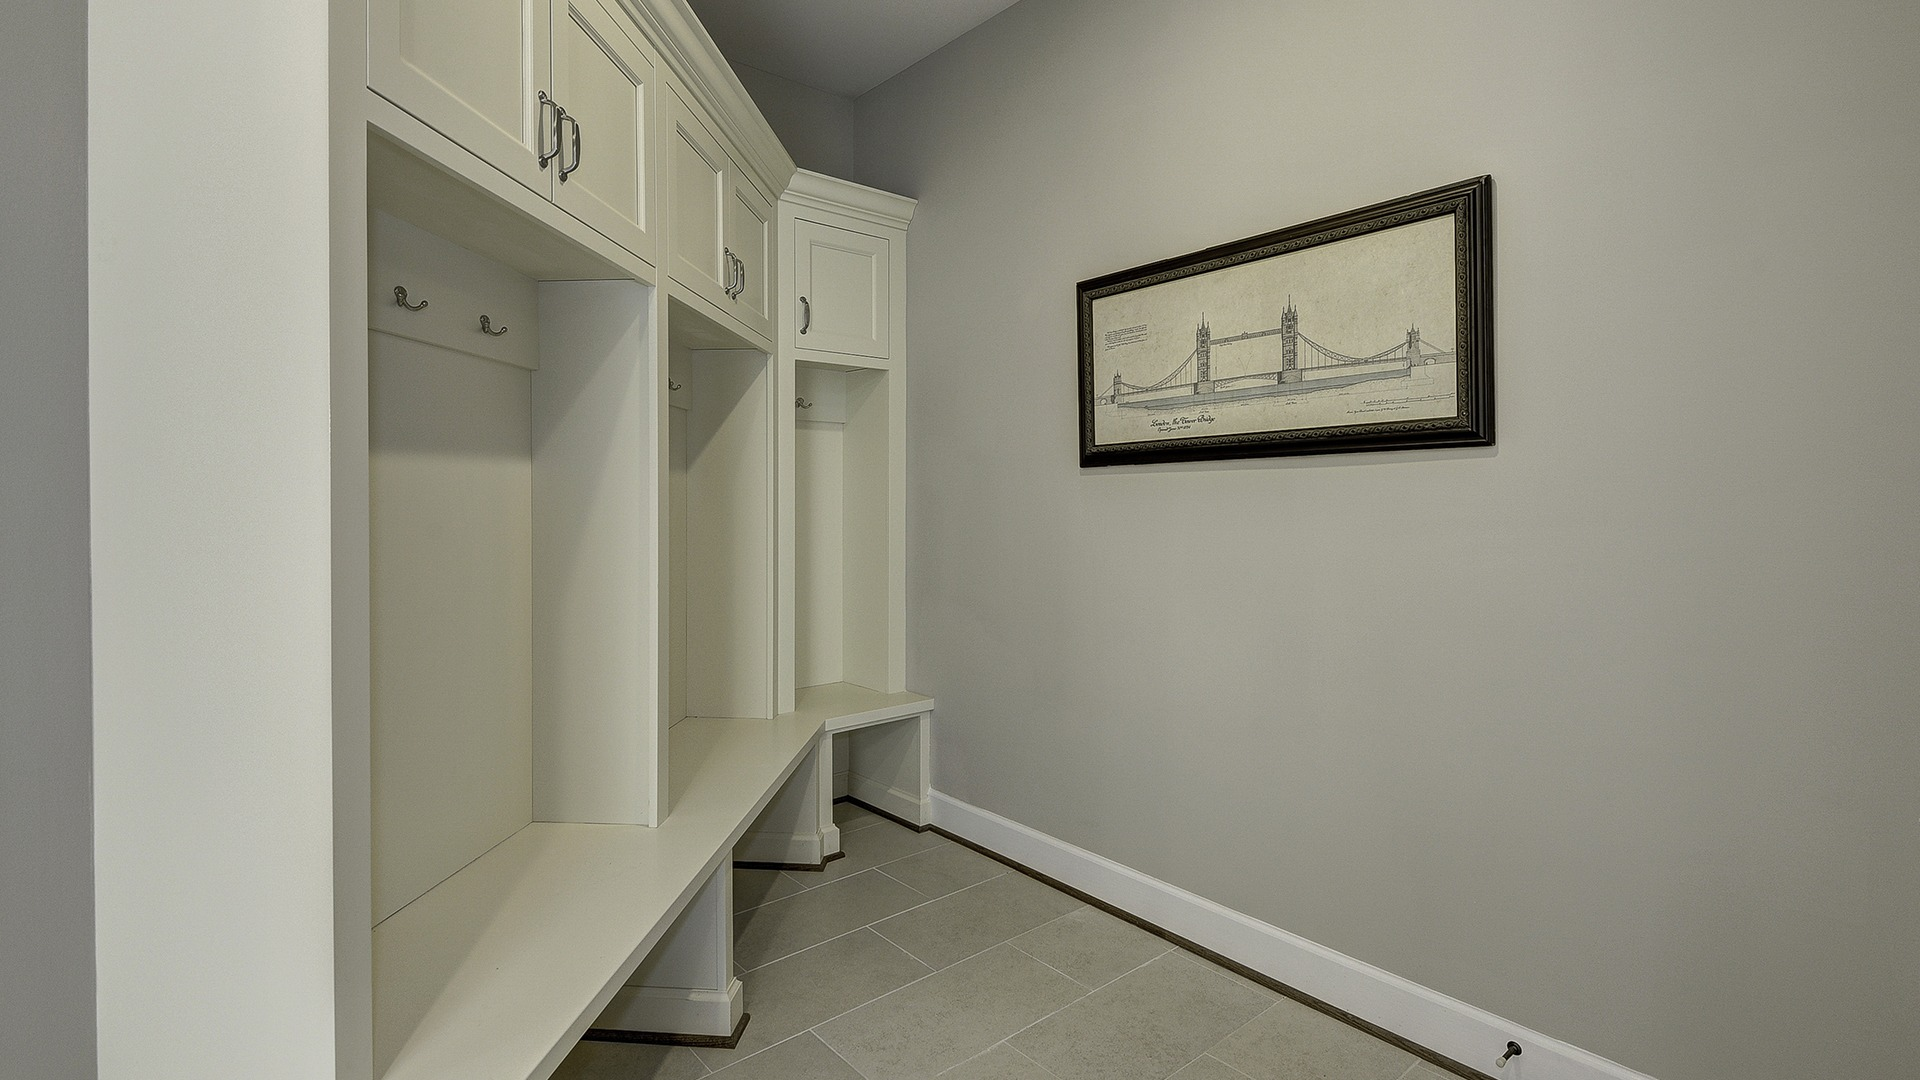 The Mudroom in Carper Street, a Gulick | One custom home.